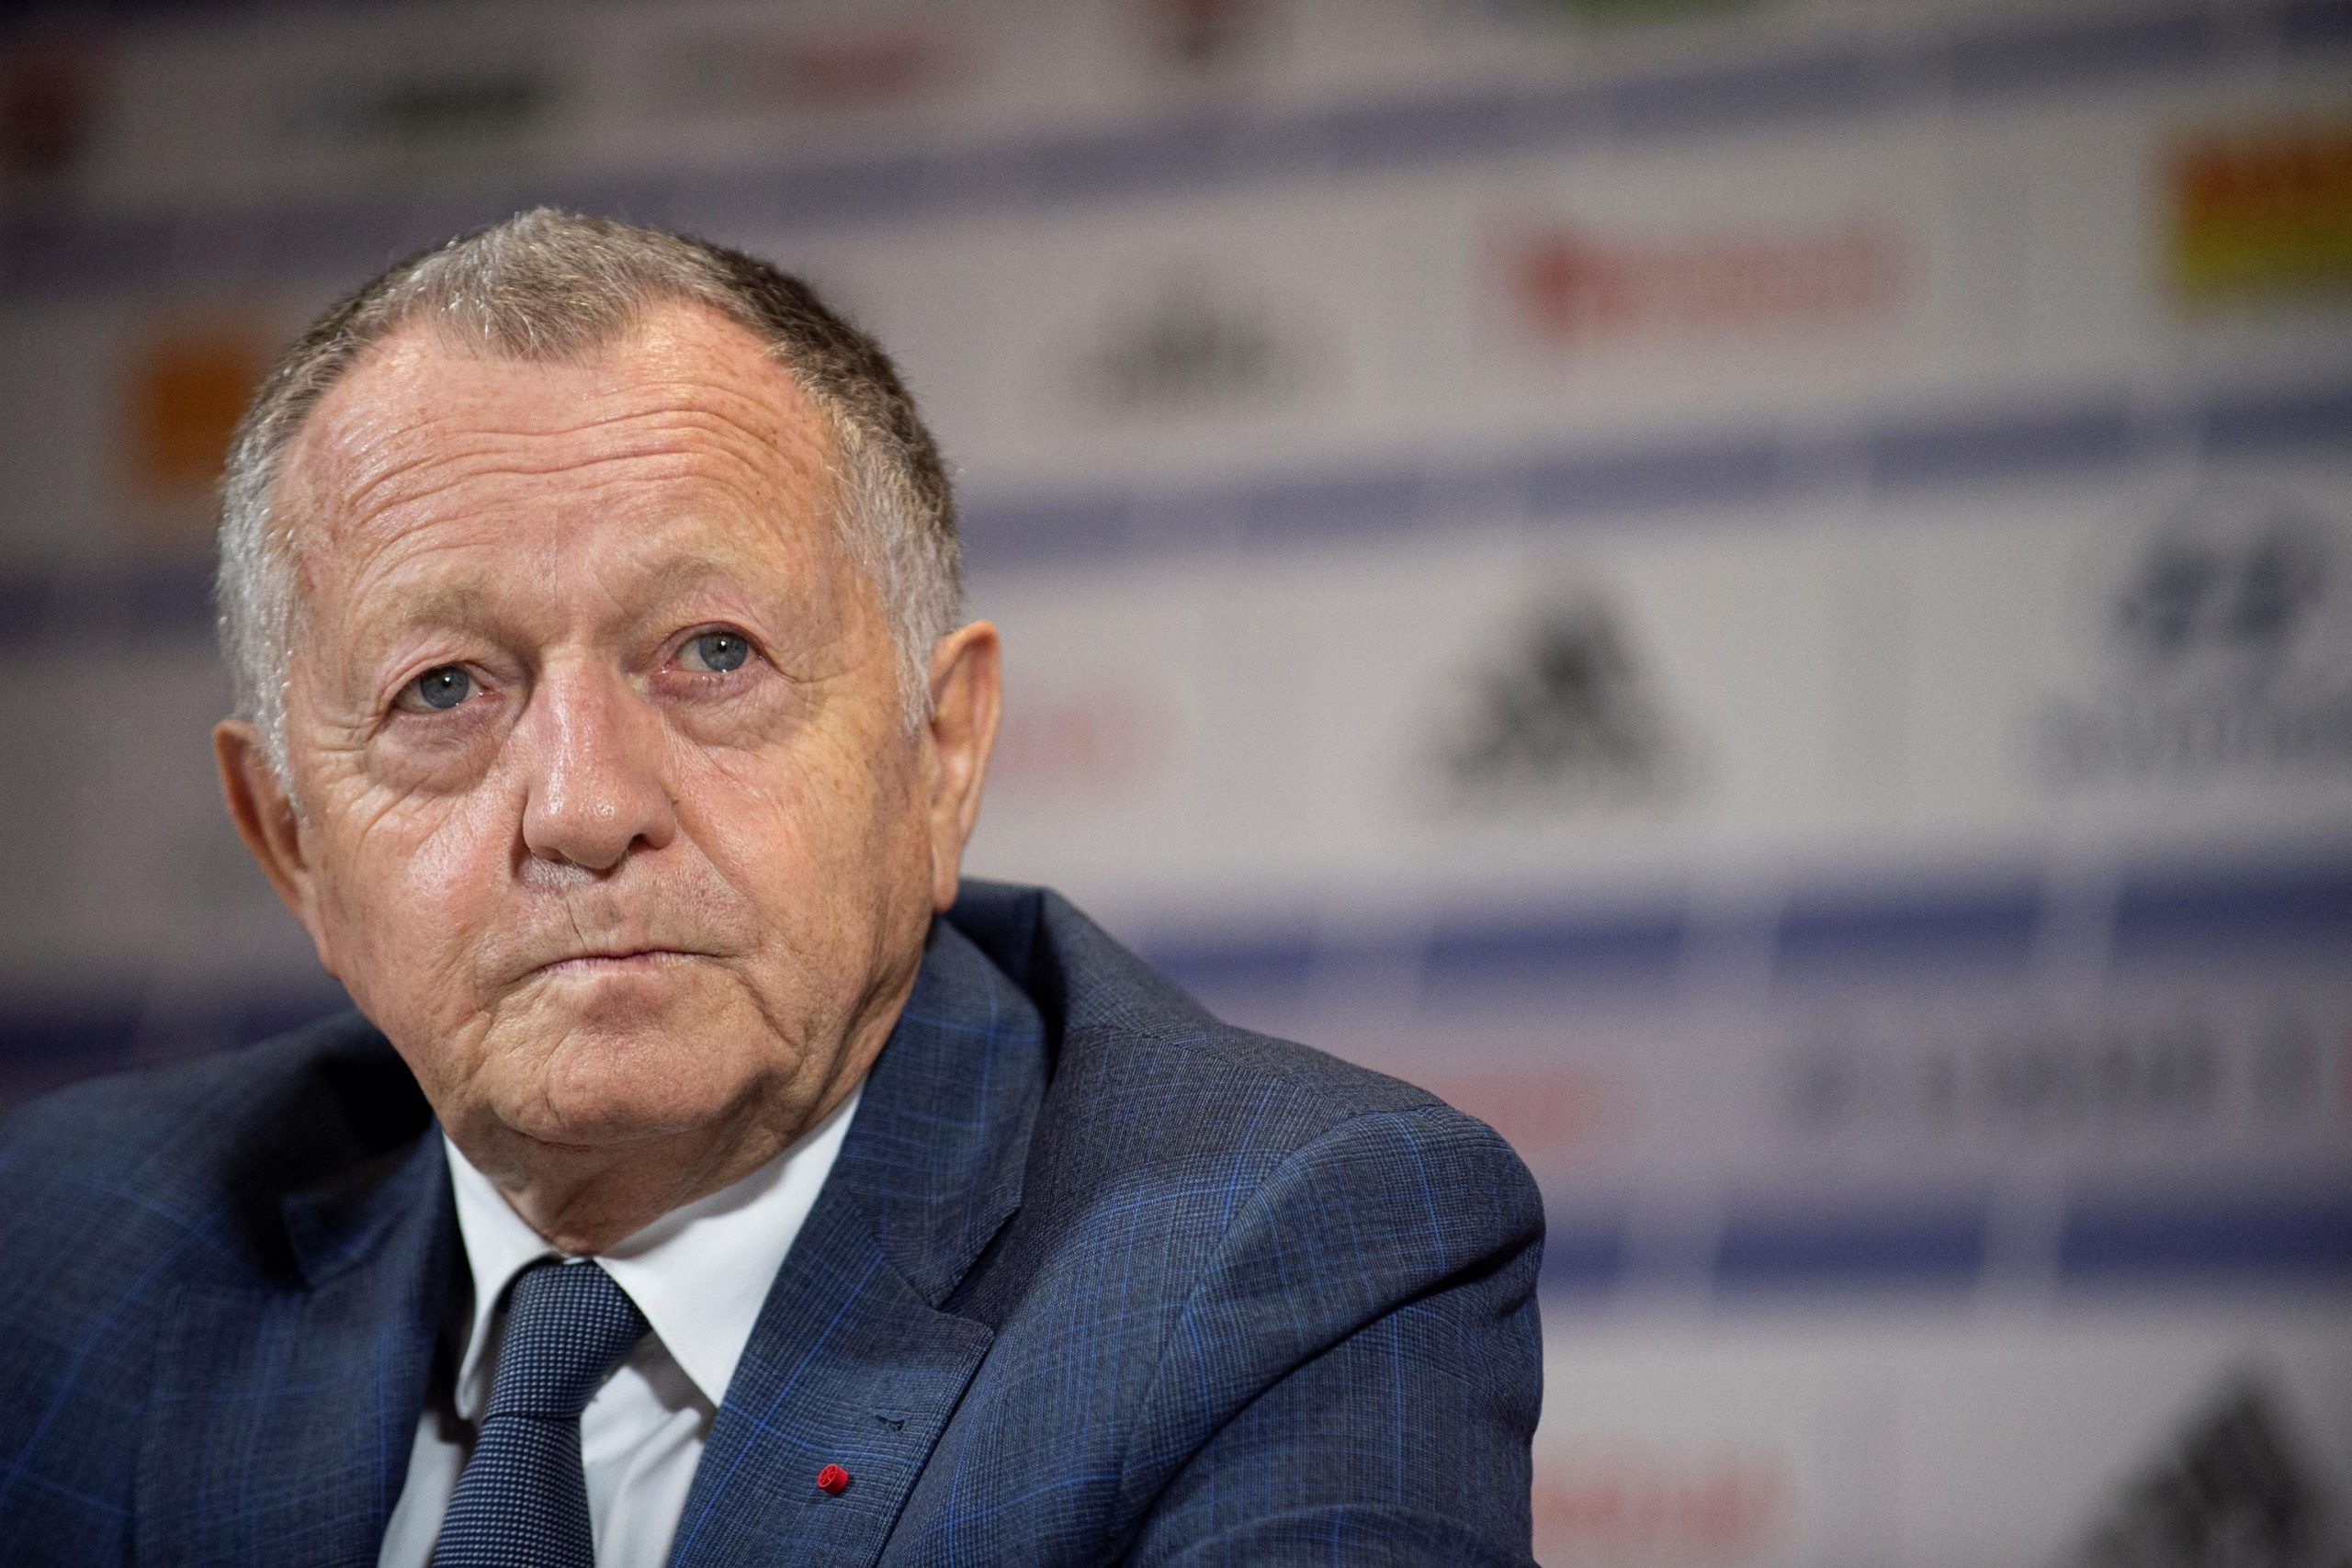 Lyon president writes letter to French government, calls for season to resume